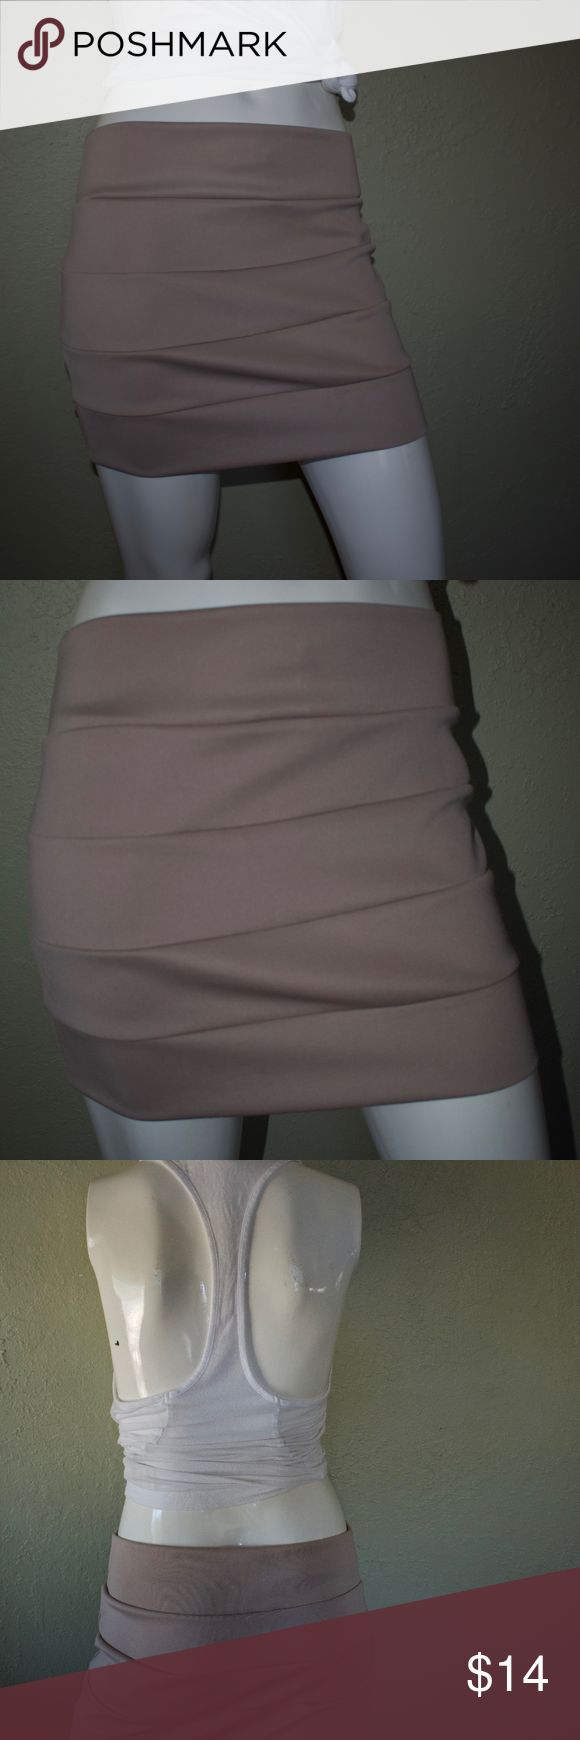 Girls night out tan high-waisted tight skirt Girls night out tan high-waisted tight skirt a'gaci Skirts Pencil